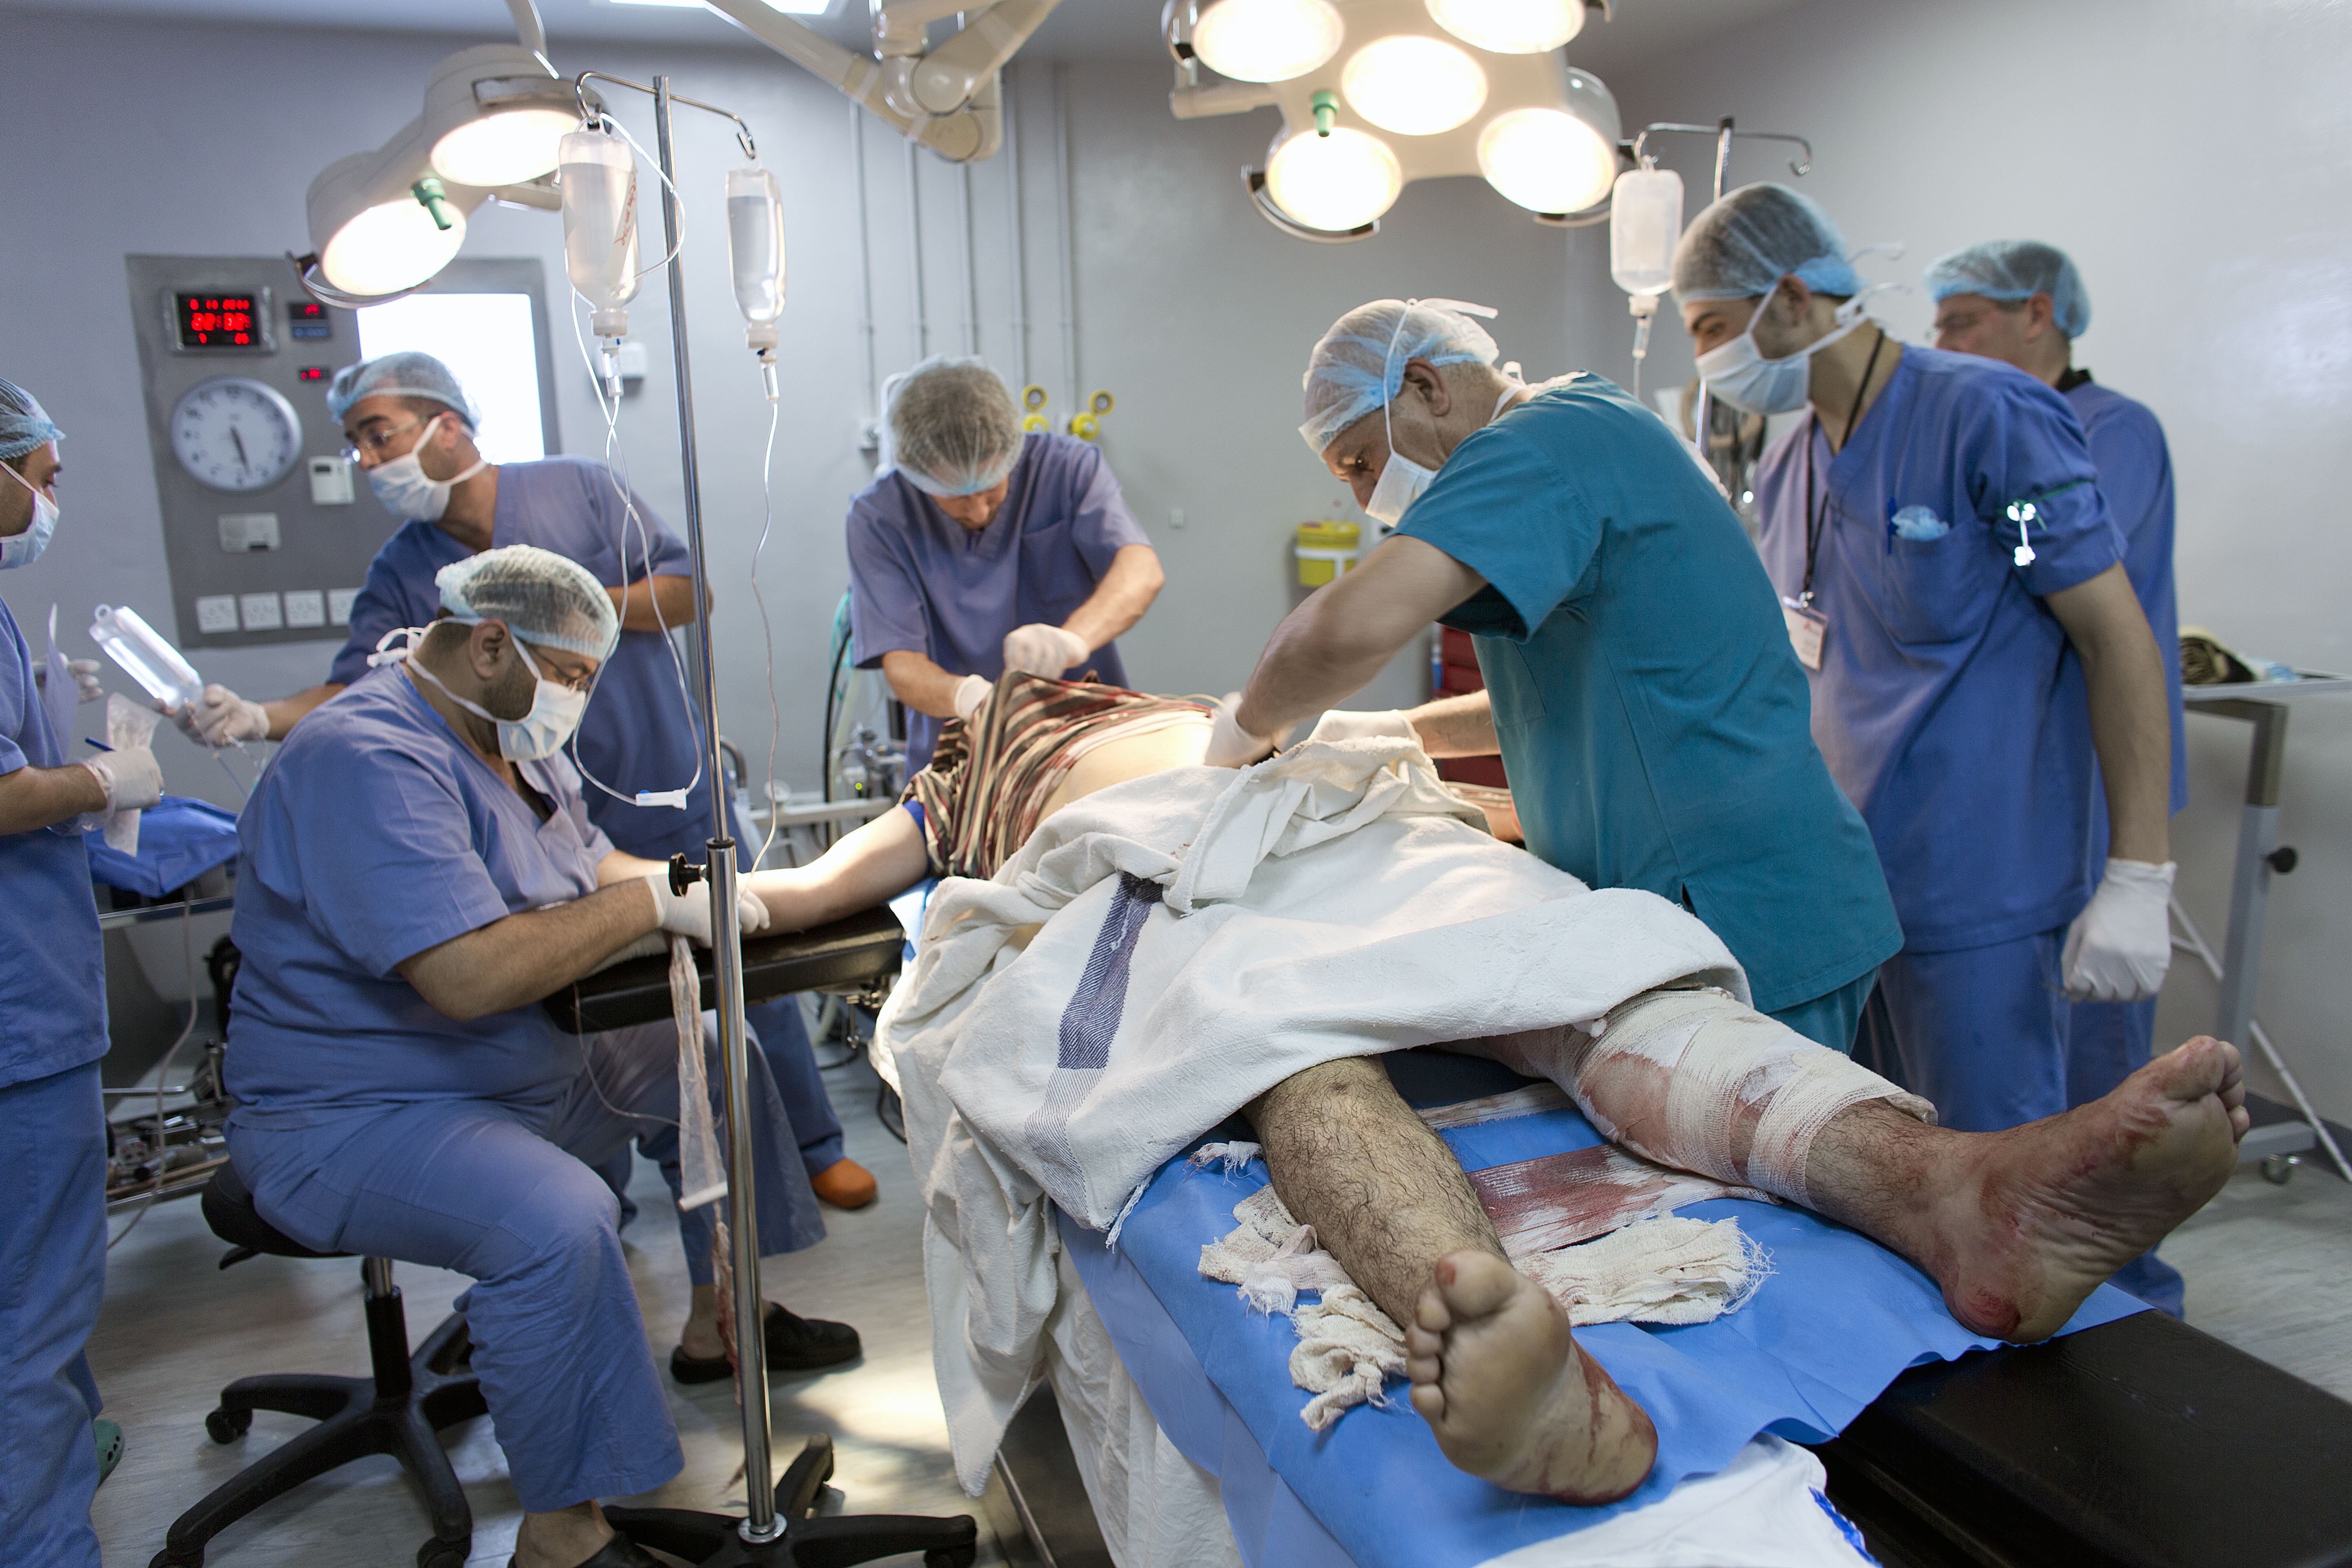 MSF staff working in the Ramtha hospital in Jordan, where war wounded patients from Syria are being treated. Doctors Without Borders' medical staff is operating a patient in the operation theater.